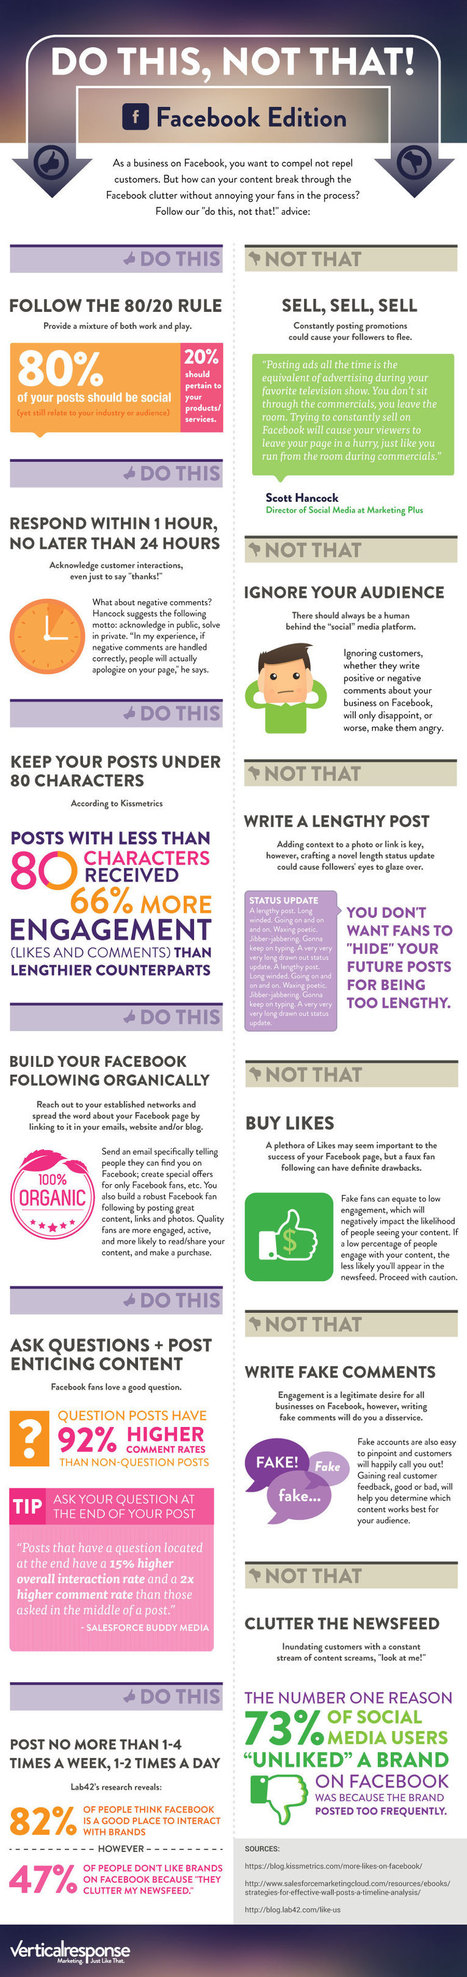 BEST PRACTICES - How to Compel & Not Repel Customers on Facebook (Infographic) | WEBOLUTION! | Scoop.it